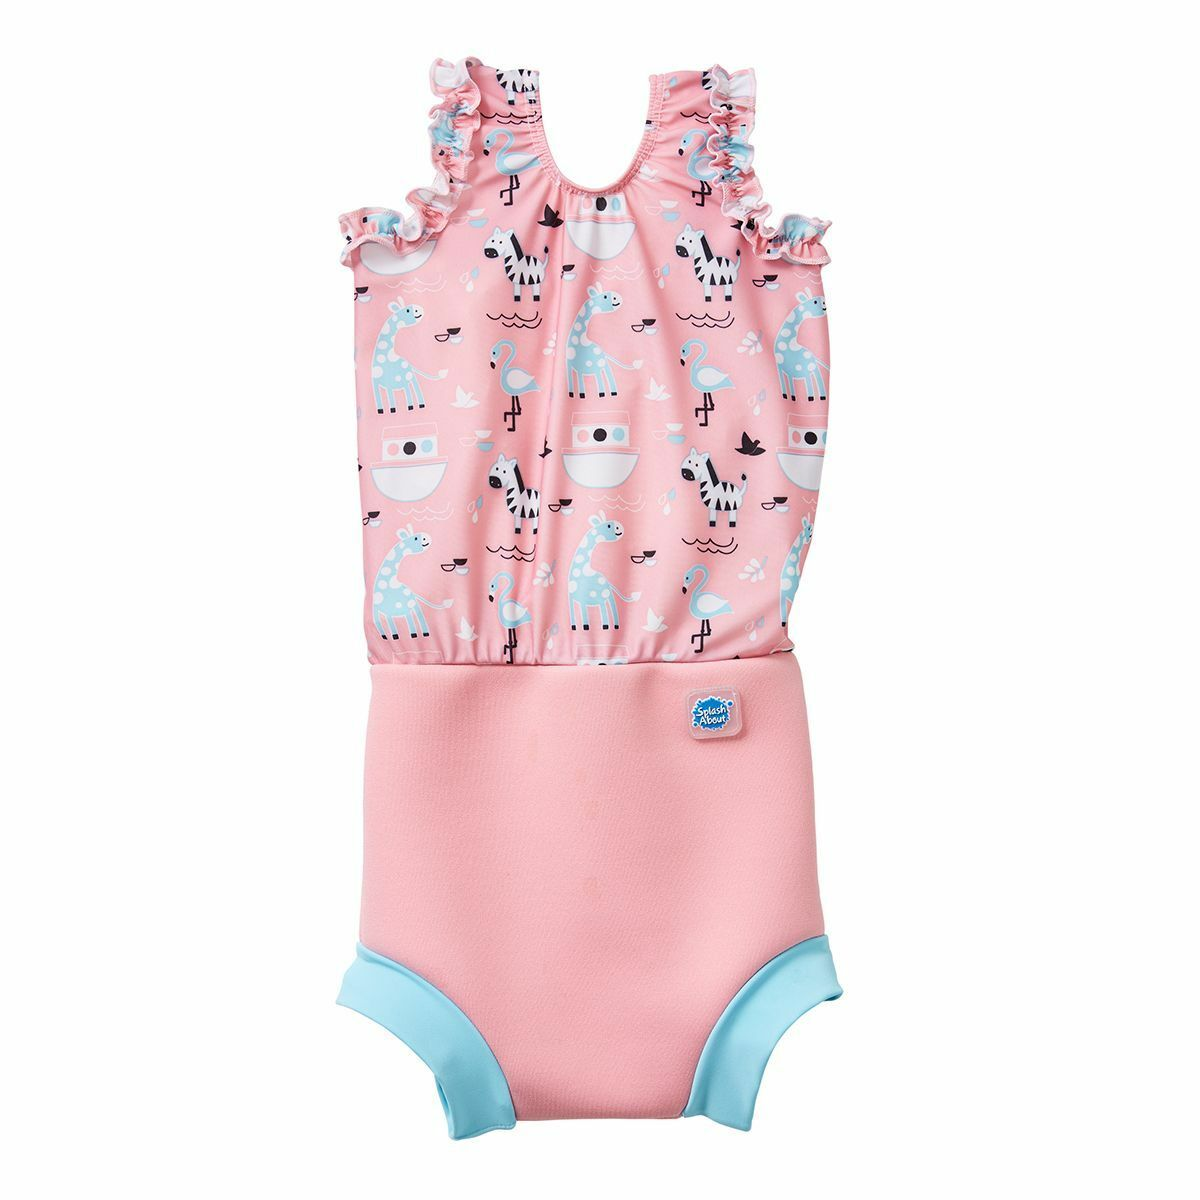 Splash About Baby Happy Nappy Wetsuit 2 in 1 Baby Wetsuit and Diaper X Large 12-24 Months, Tutti Frutti